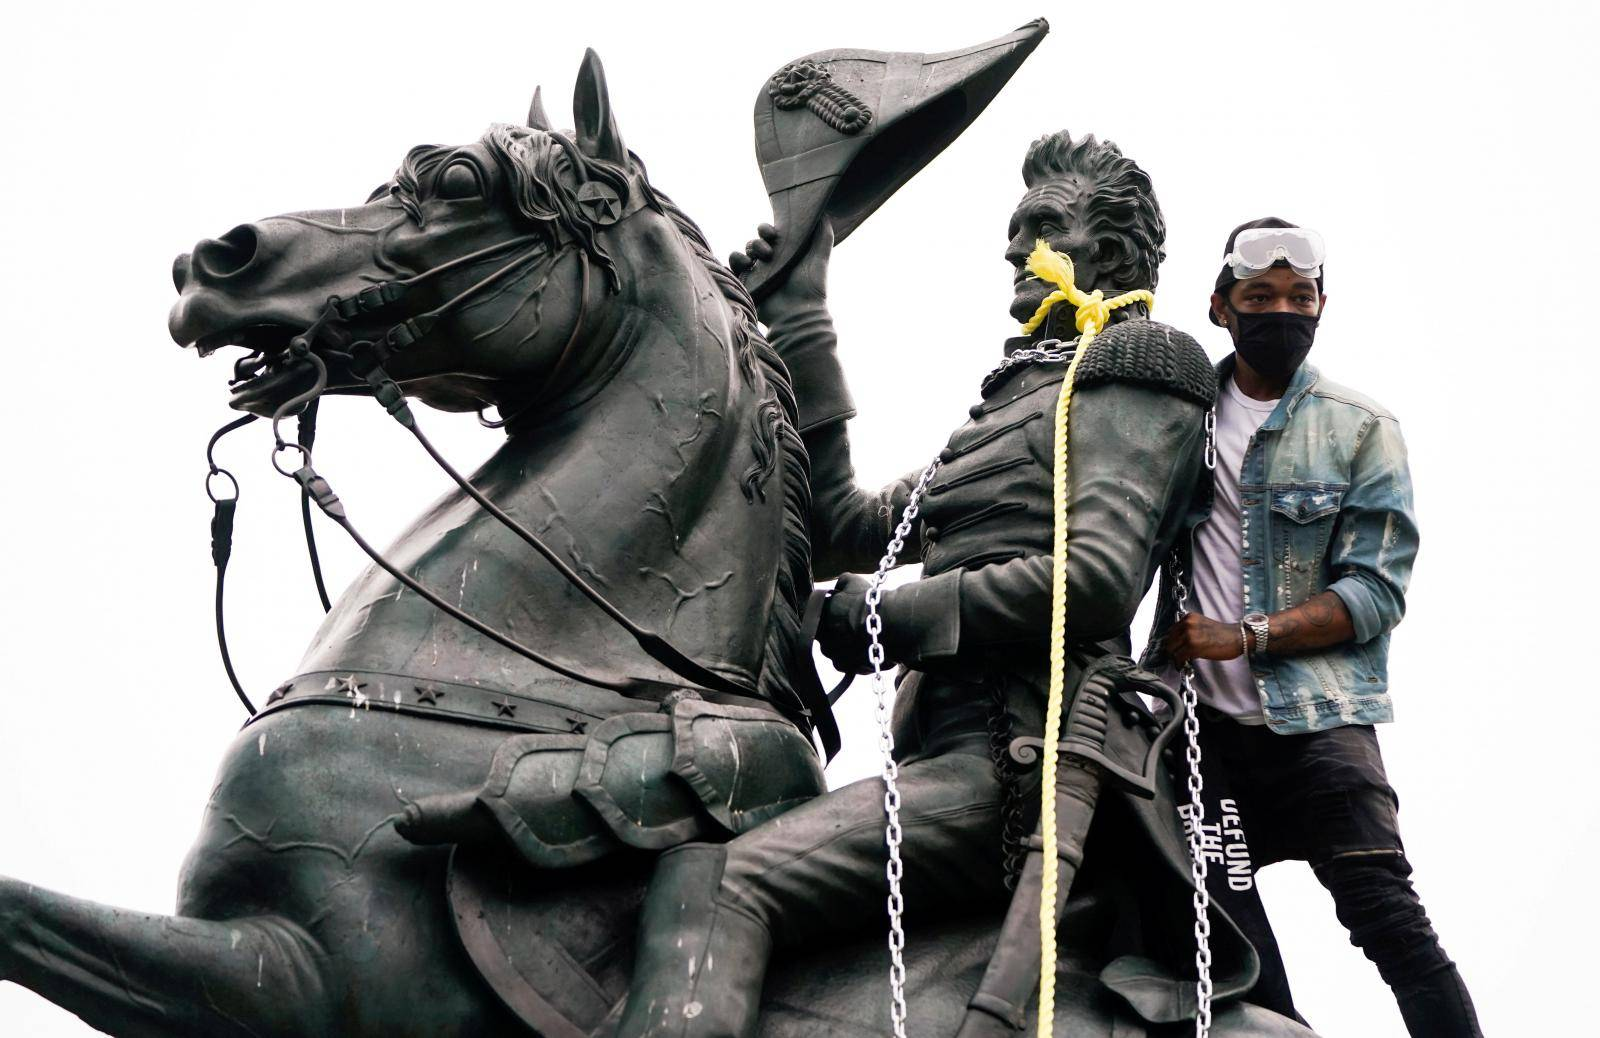 Protestors try to pull down statue of U.S. President Andrew Jackson in front of the White House in Washington